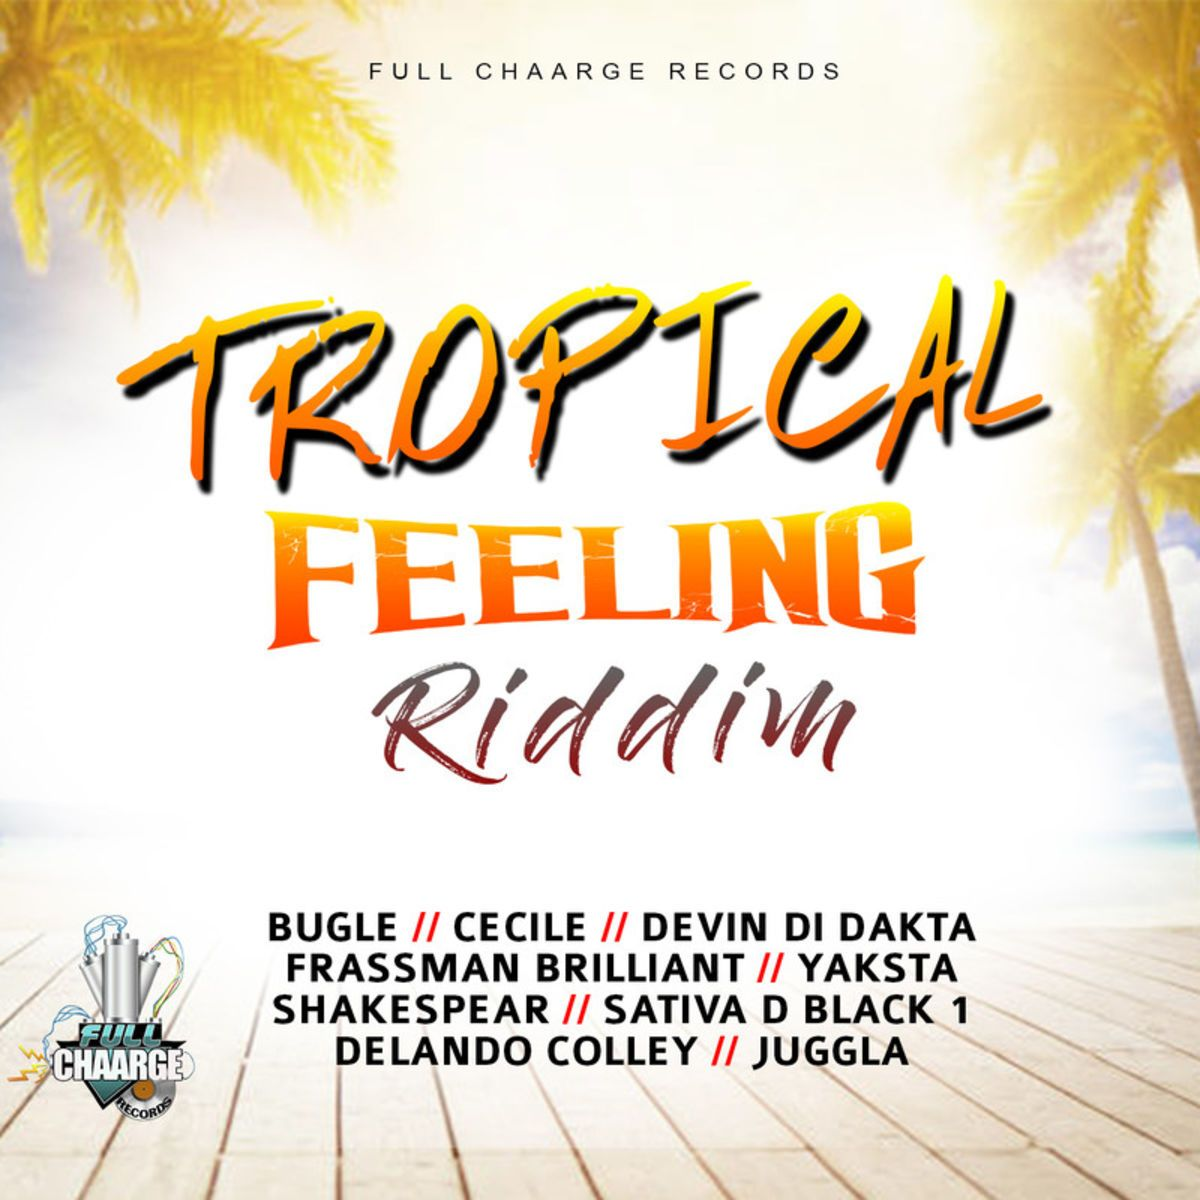 Tropical Feeling Riddim - 2018 Full Chaarge Records